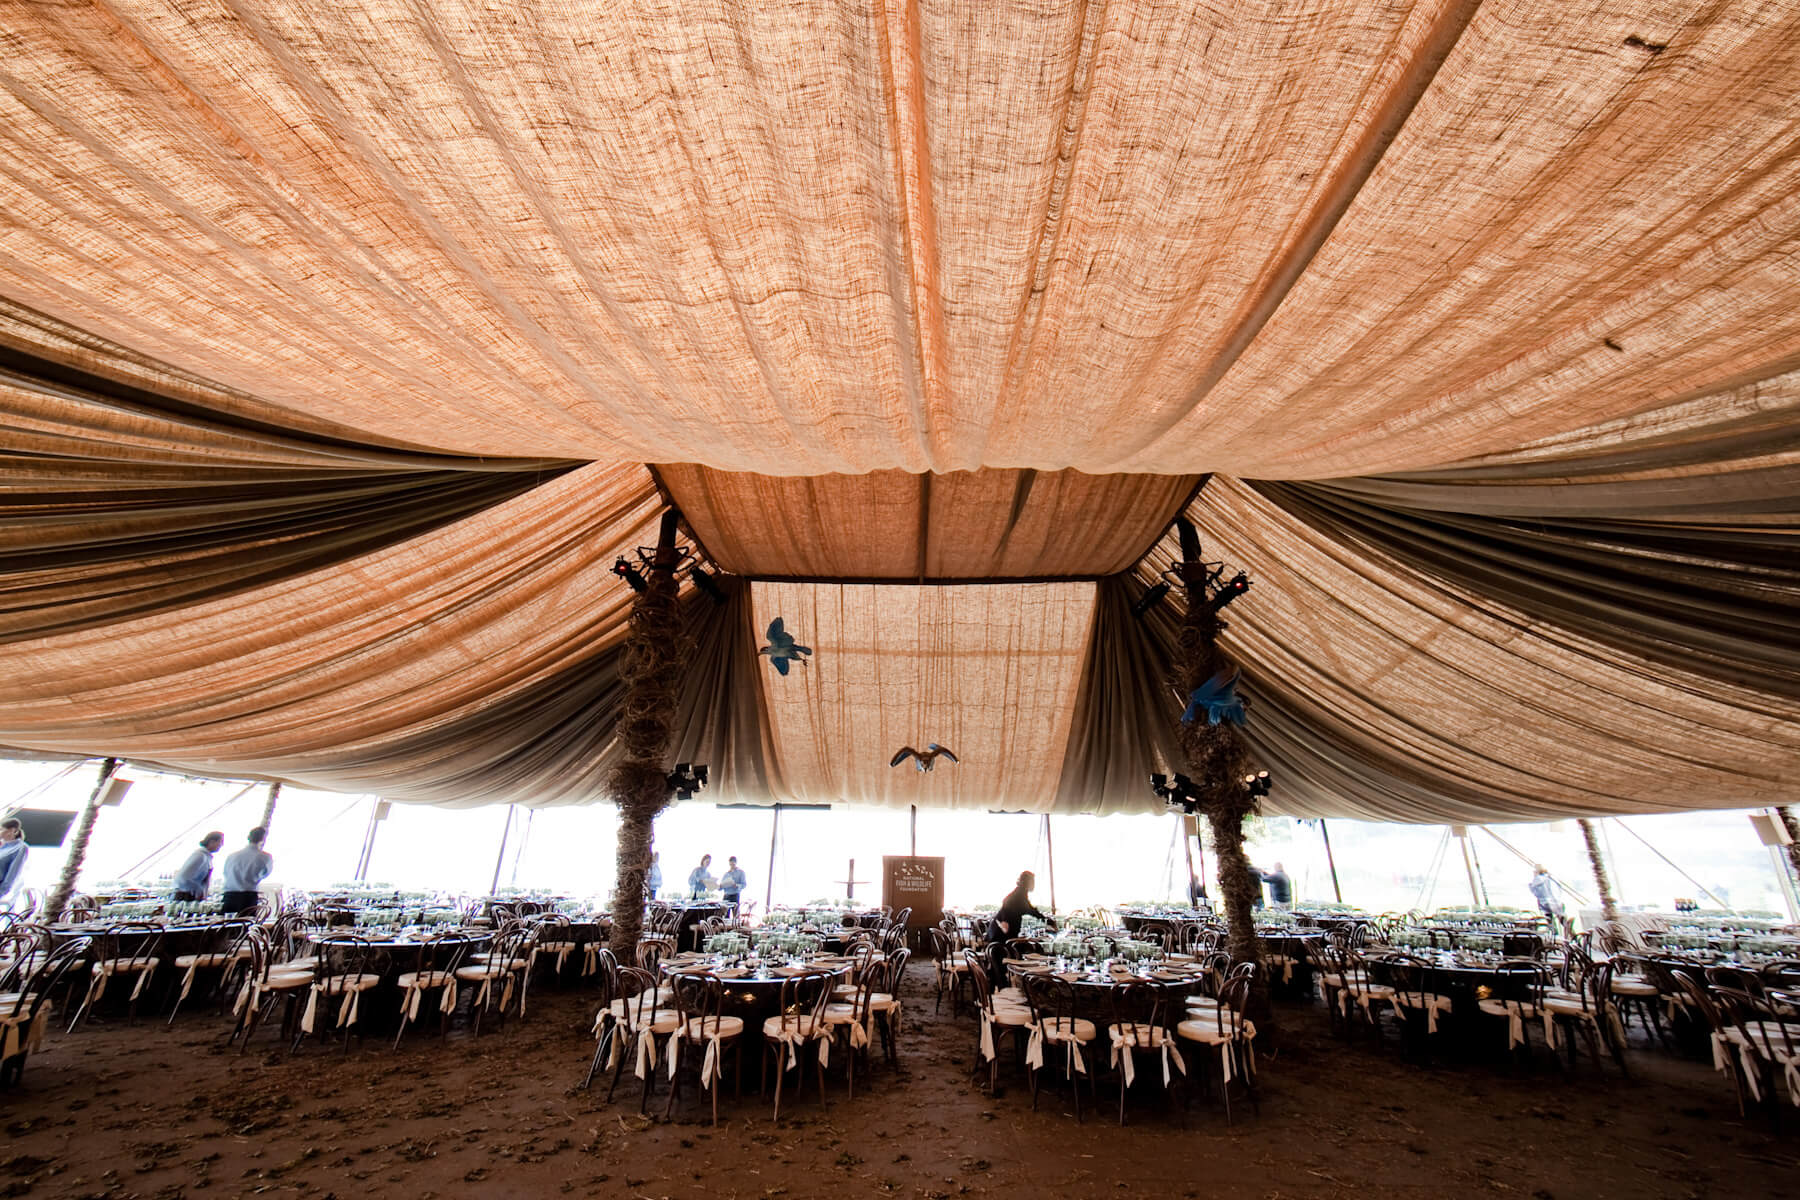 Peach and tan cloth draped ceiling above dinner tables